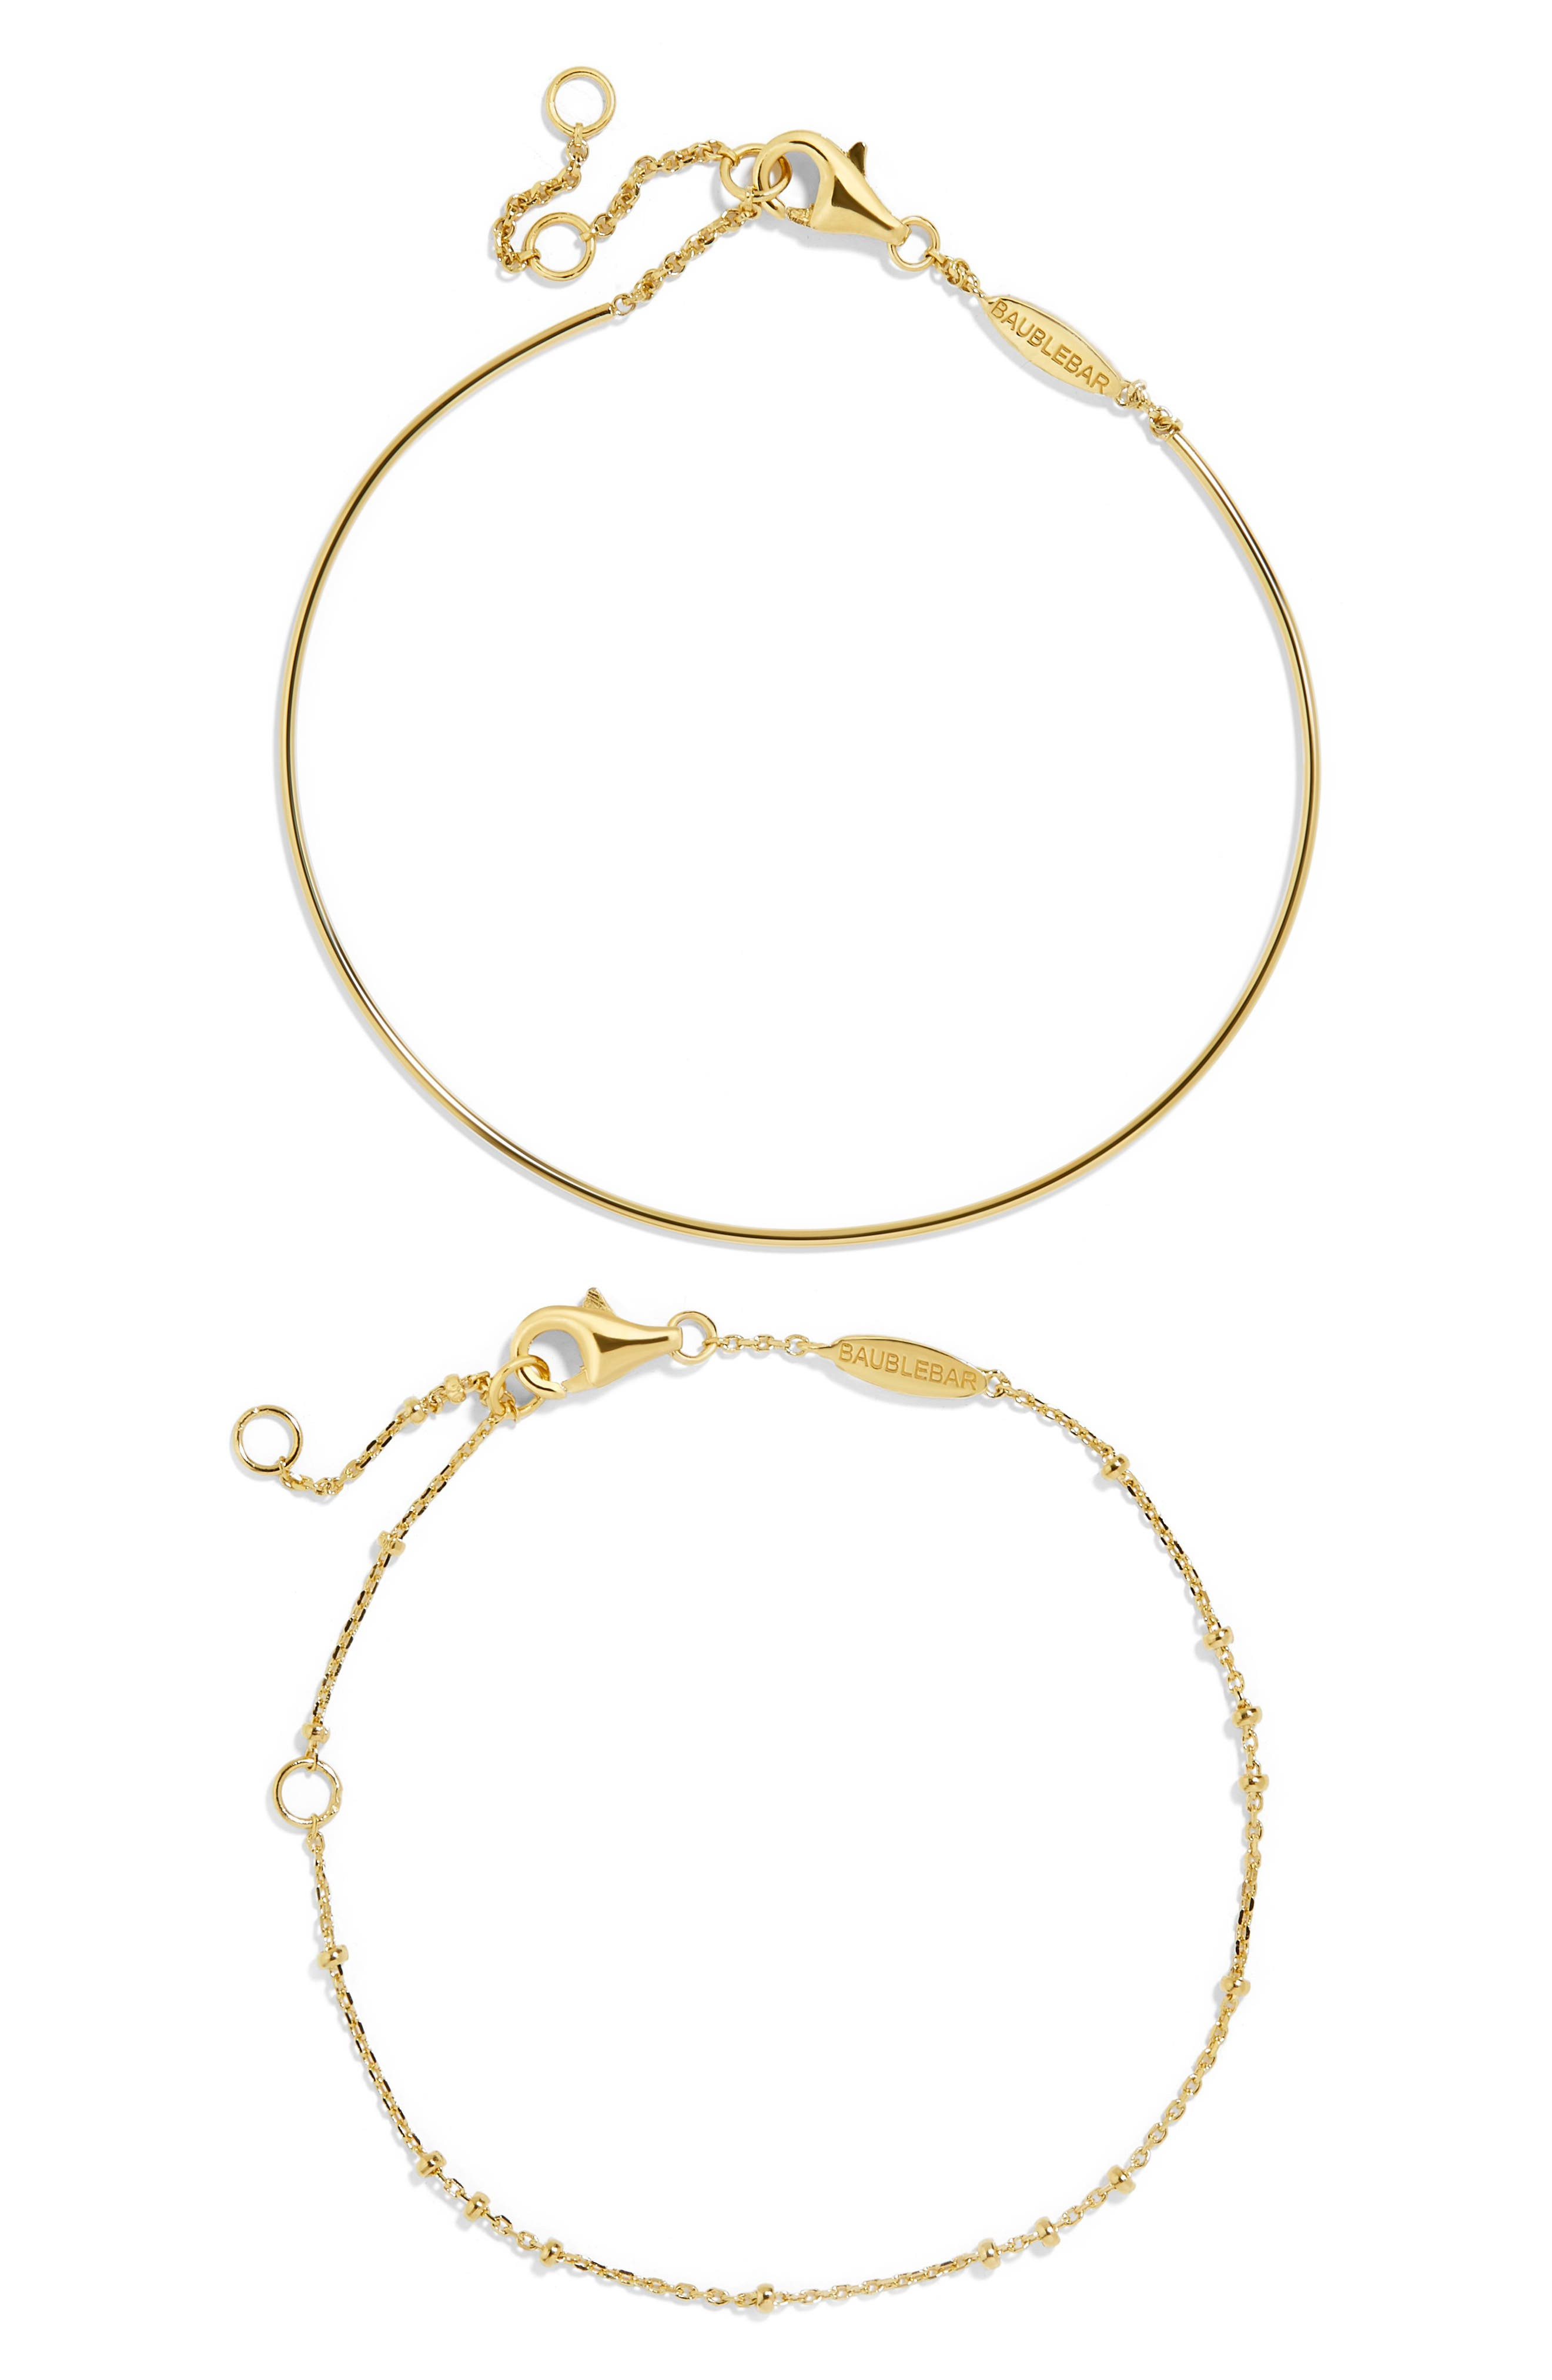 Opposto Everyday Fine Set of 2 Bracelets,                             Main thumbnail 1, color,                             Gold